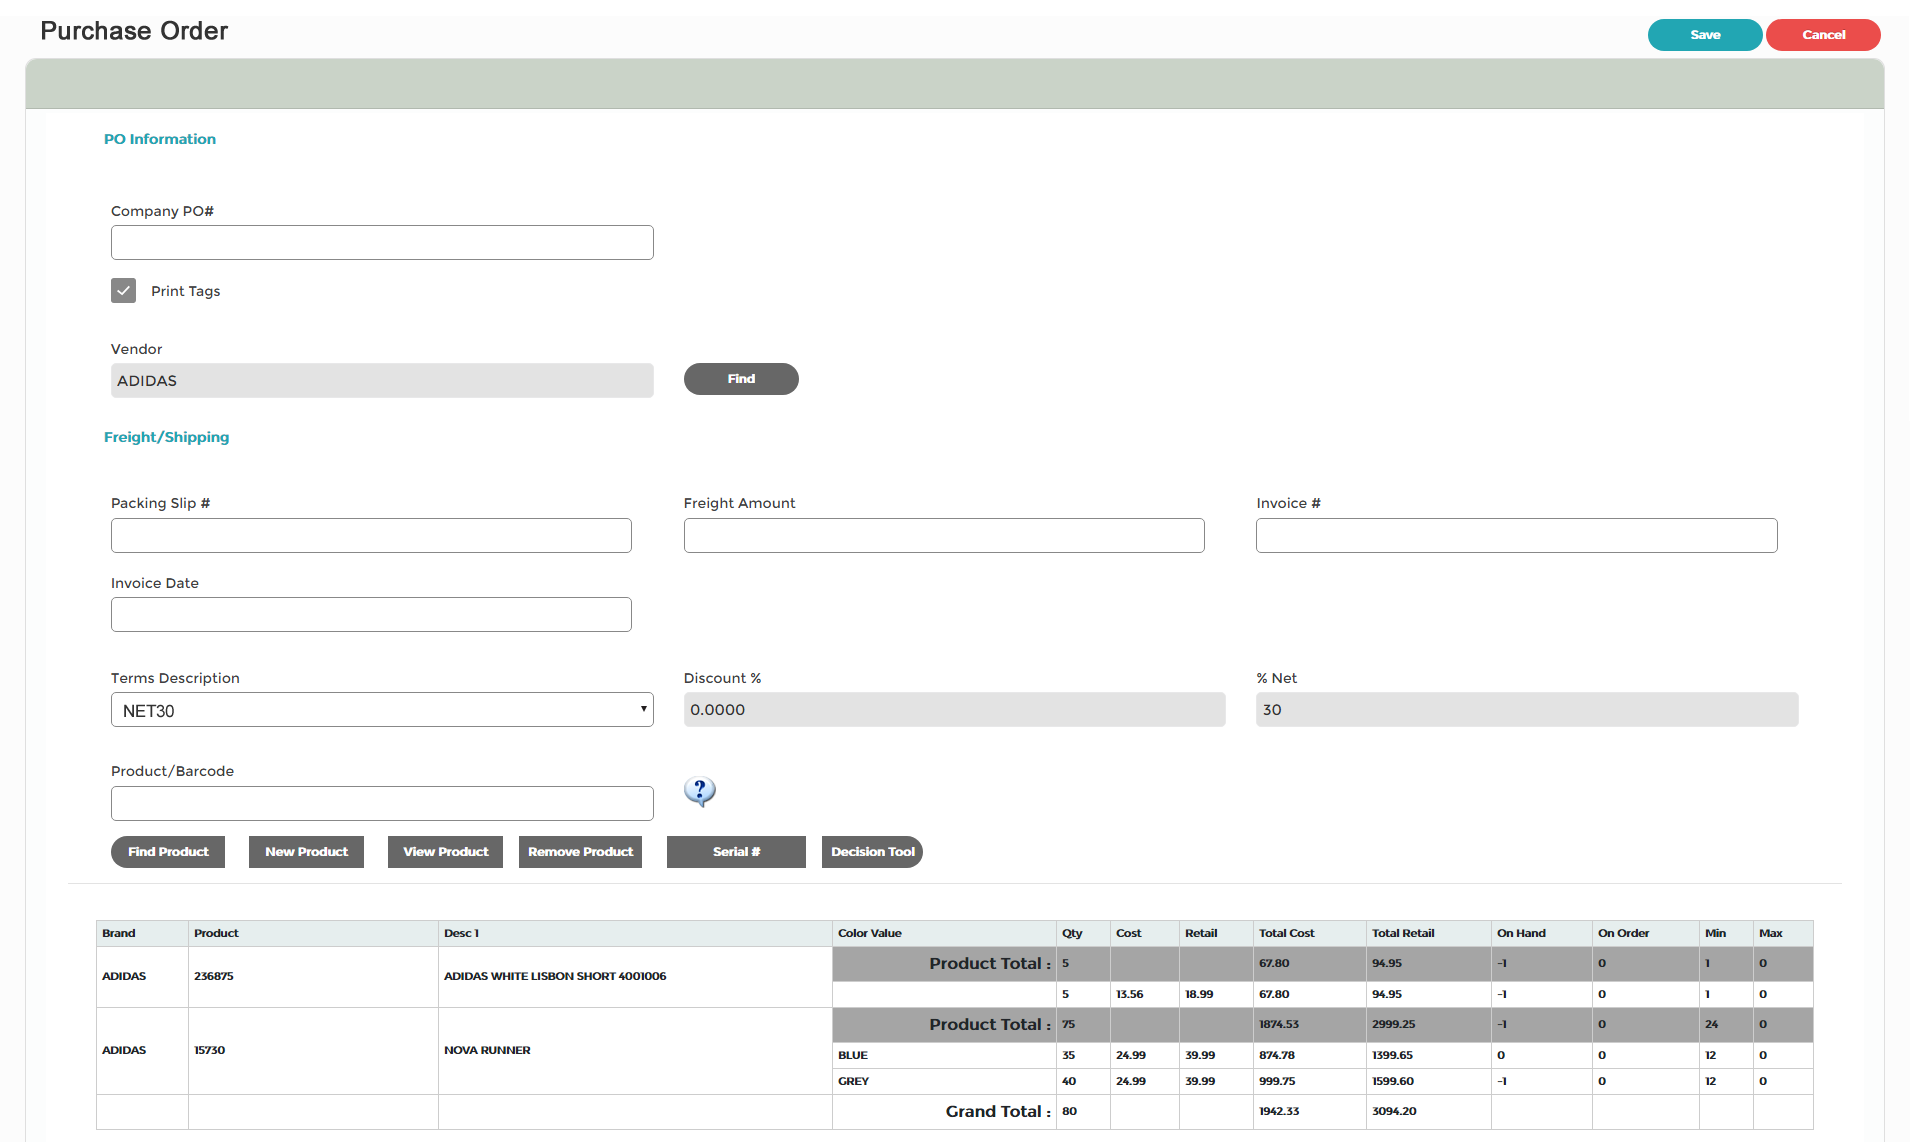 Cumulus Retail's Purchase Order screen